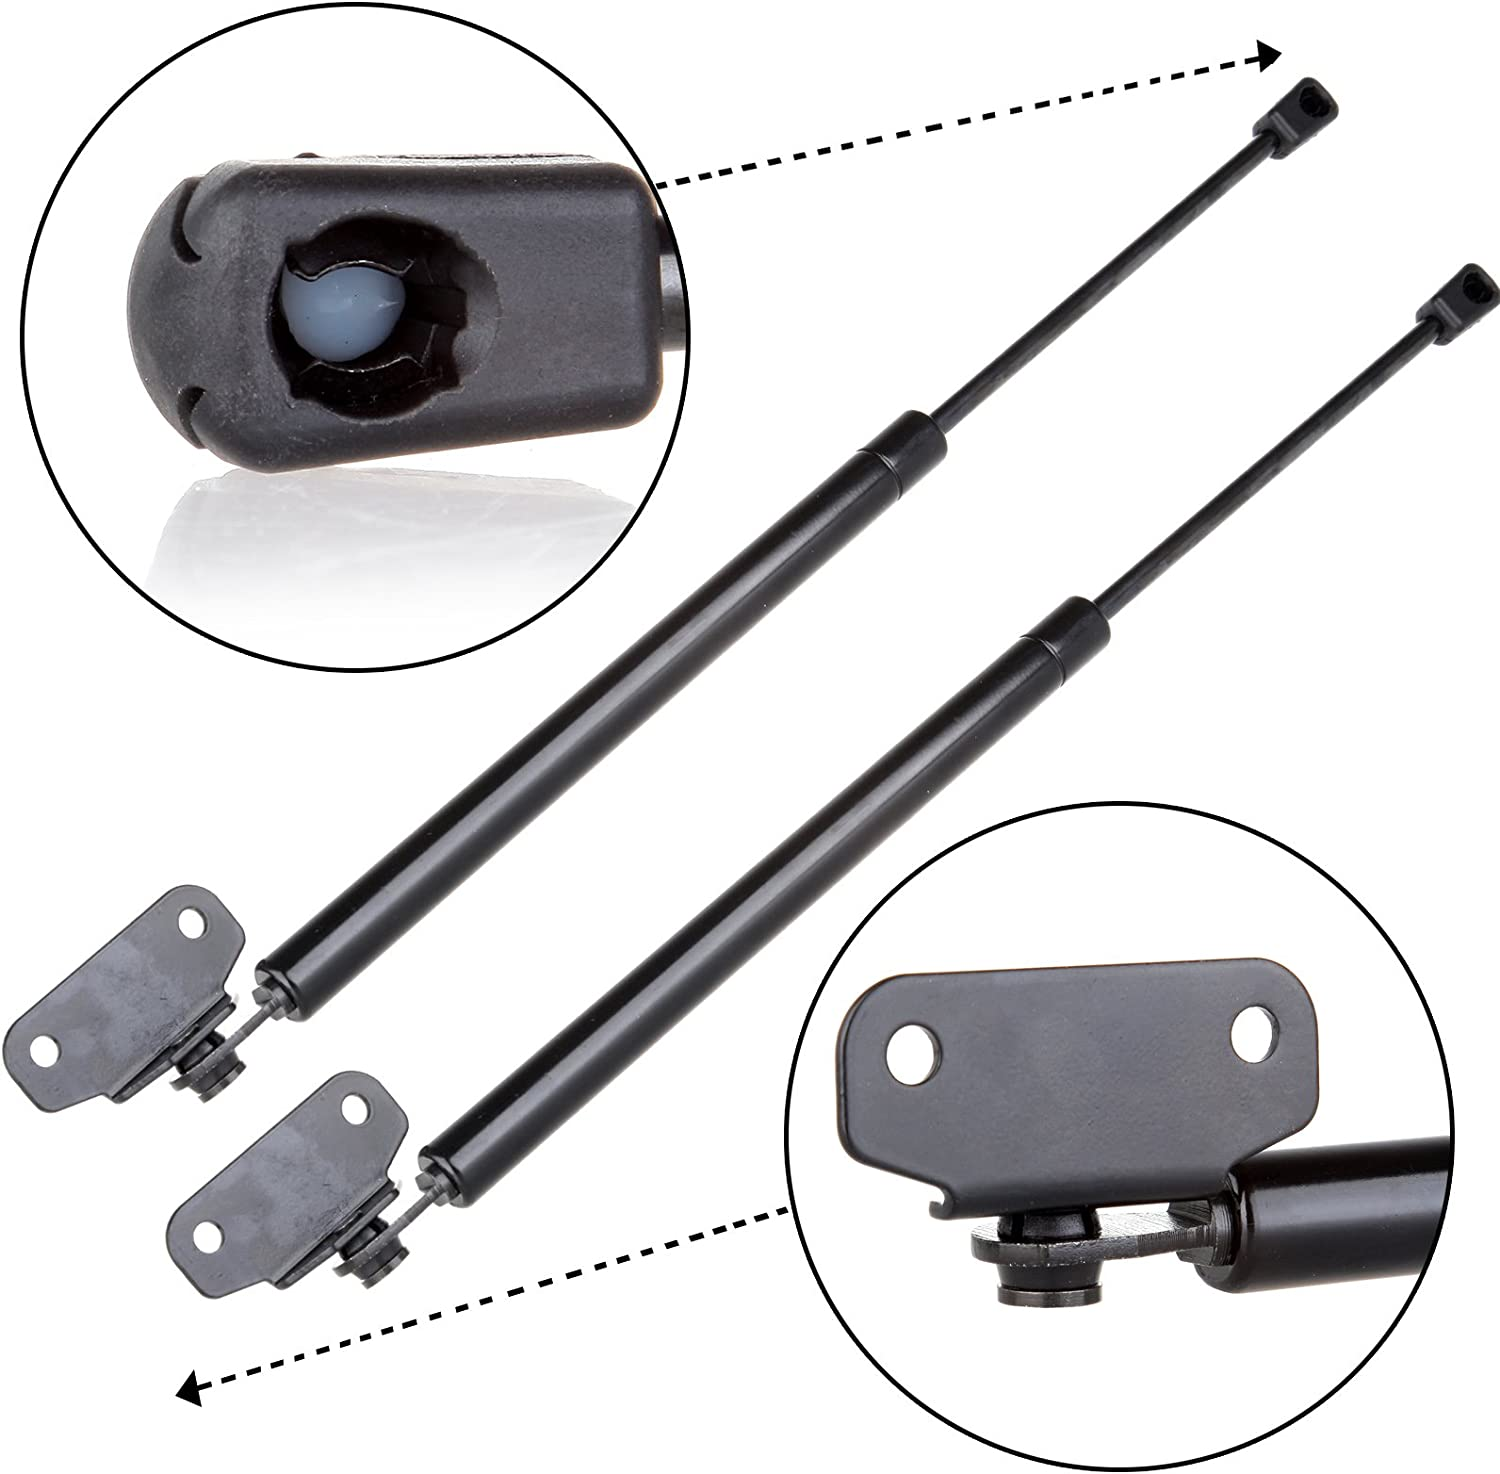 Two Rear Trunk Lid Gas Charged Lift Supports for 2005-2012 Acura RL WGS-656-657 Wisconsin Auto Supply Left and Right Side